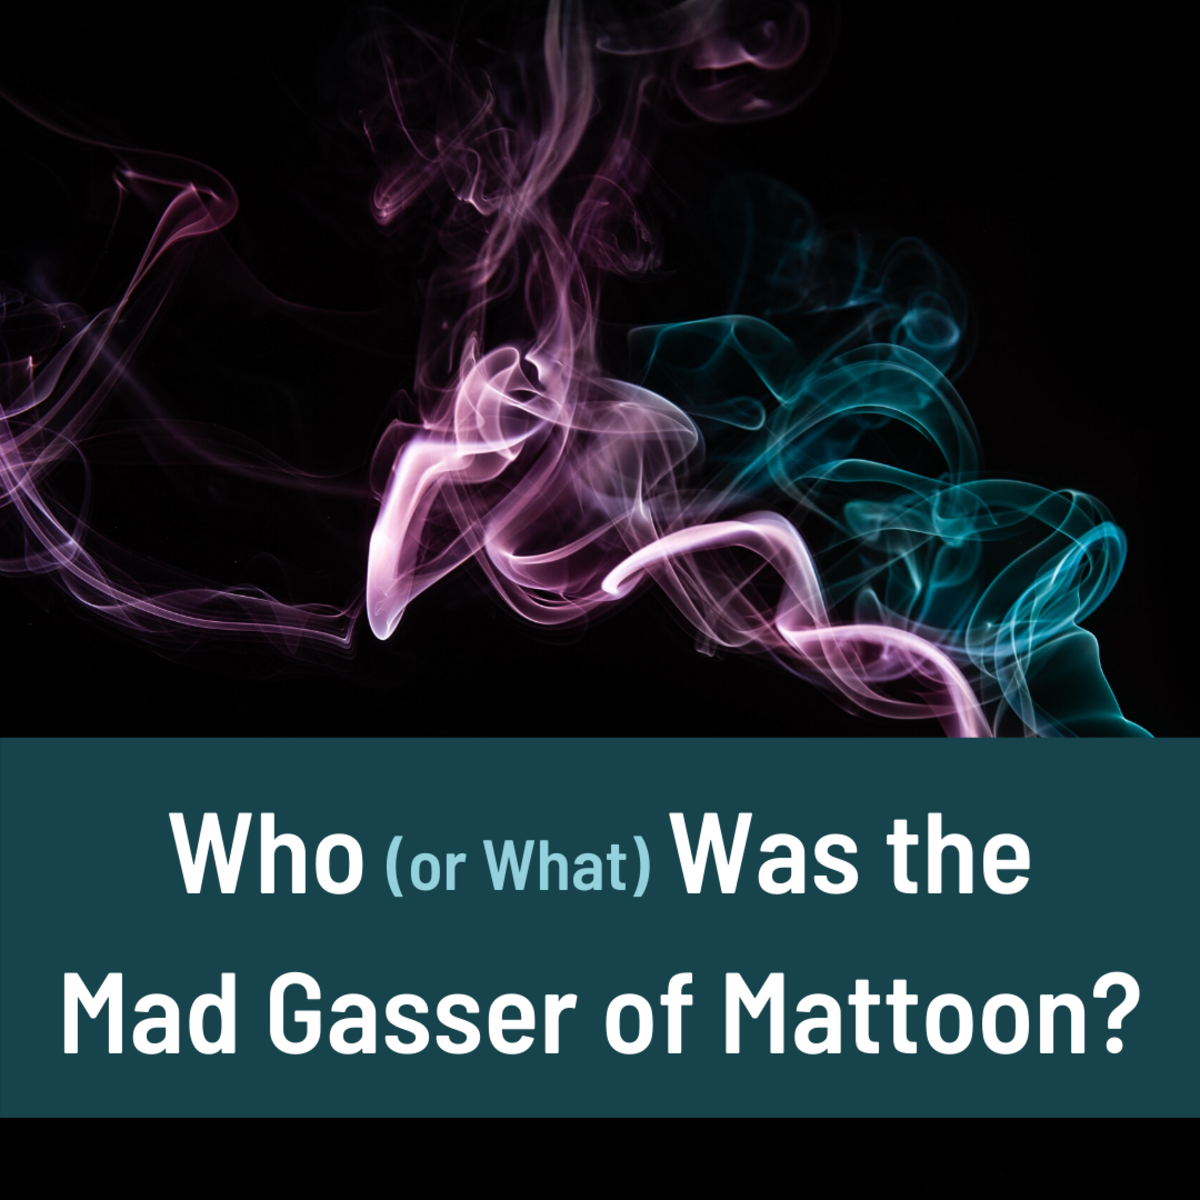 Learn about the Mad Gasser of Mattoon and explore some possible explanations for the gassing incidents in this city.